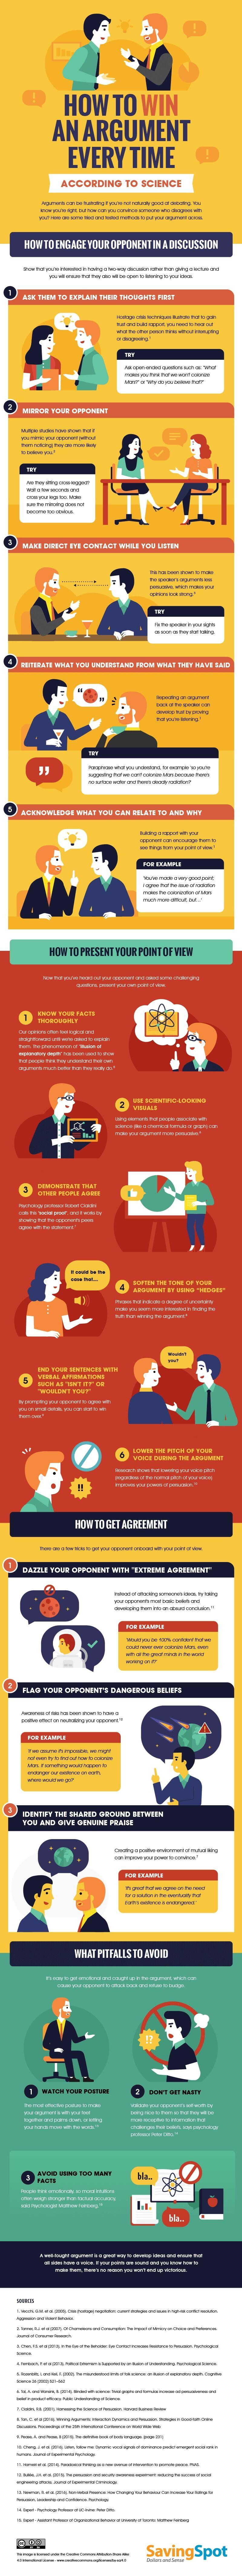 win arguments straight forwards tips infographic ToolsHero